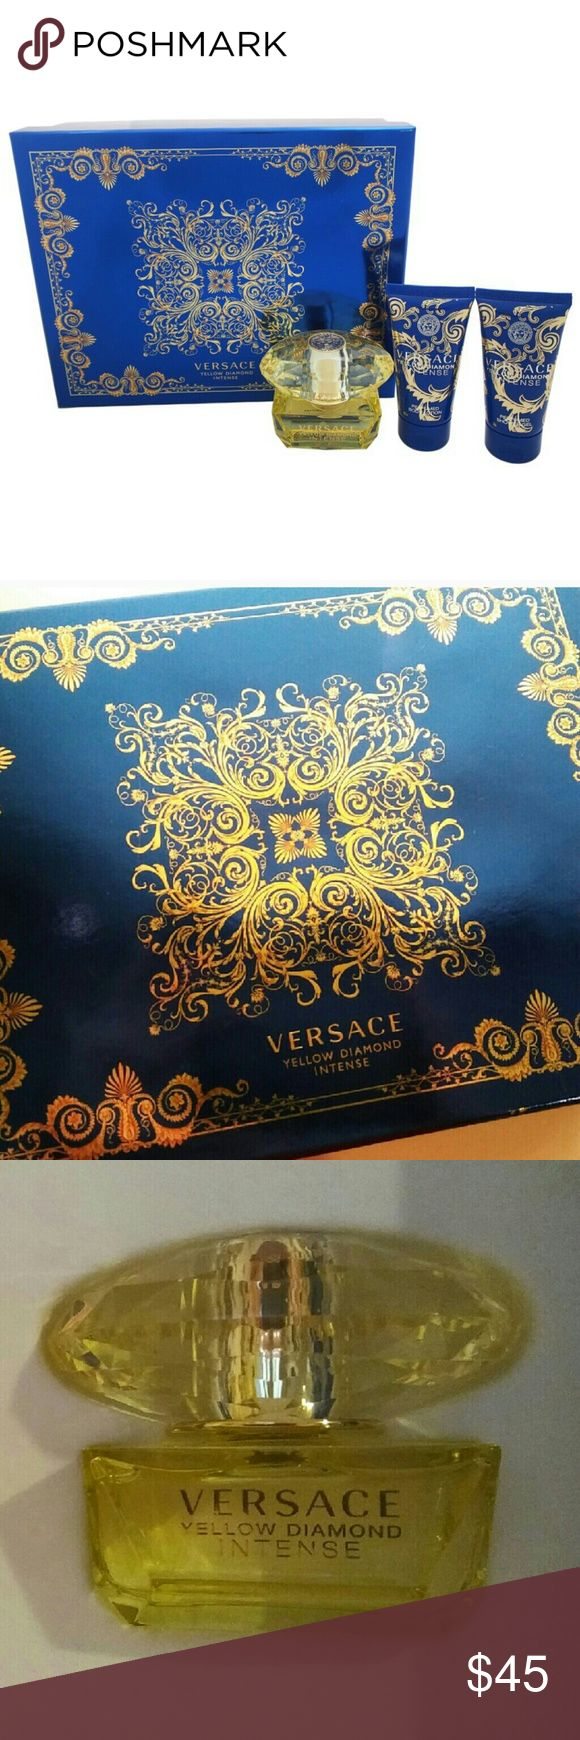 Versace Yellow Diamond Intense Gift Set Brand new with tags! Perfect for mothers day! Versace Yellow Diamond Intense Gift Set! 3 Pc Gift Set   This feminine fragrance has a blend of benzoin, amber wood, palo santo, musk, orange blossom, jasmine, and osmanthus  Eau de Parfum Spray  1.7 FL OZ  Perfumed Body Lotion 1.7 FL OZ   Perfumed Shower Gel 1.7 FL OZ Versace Makeup